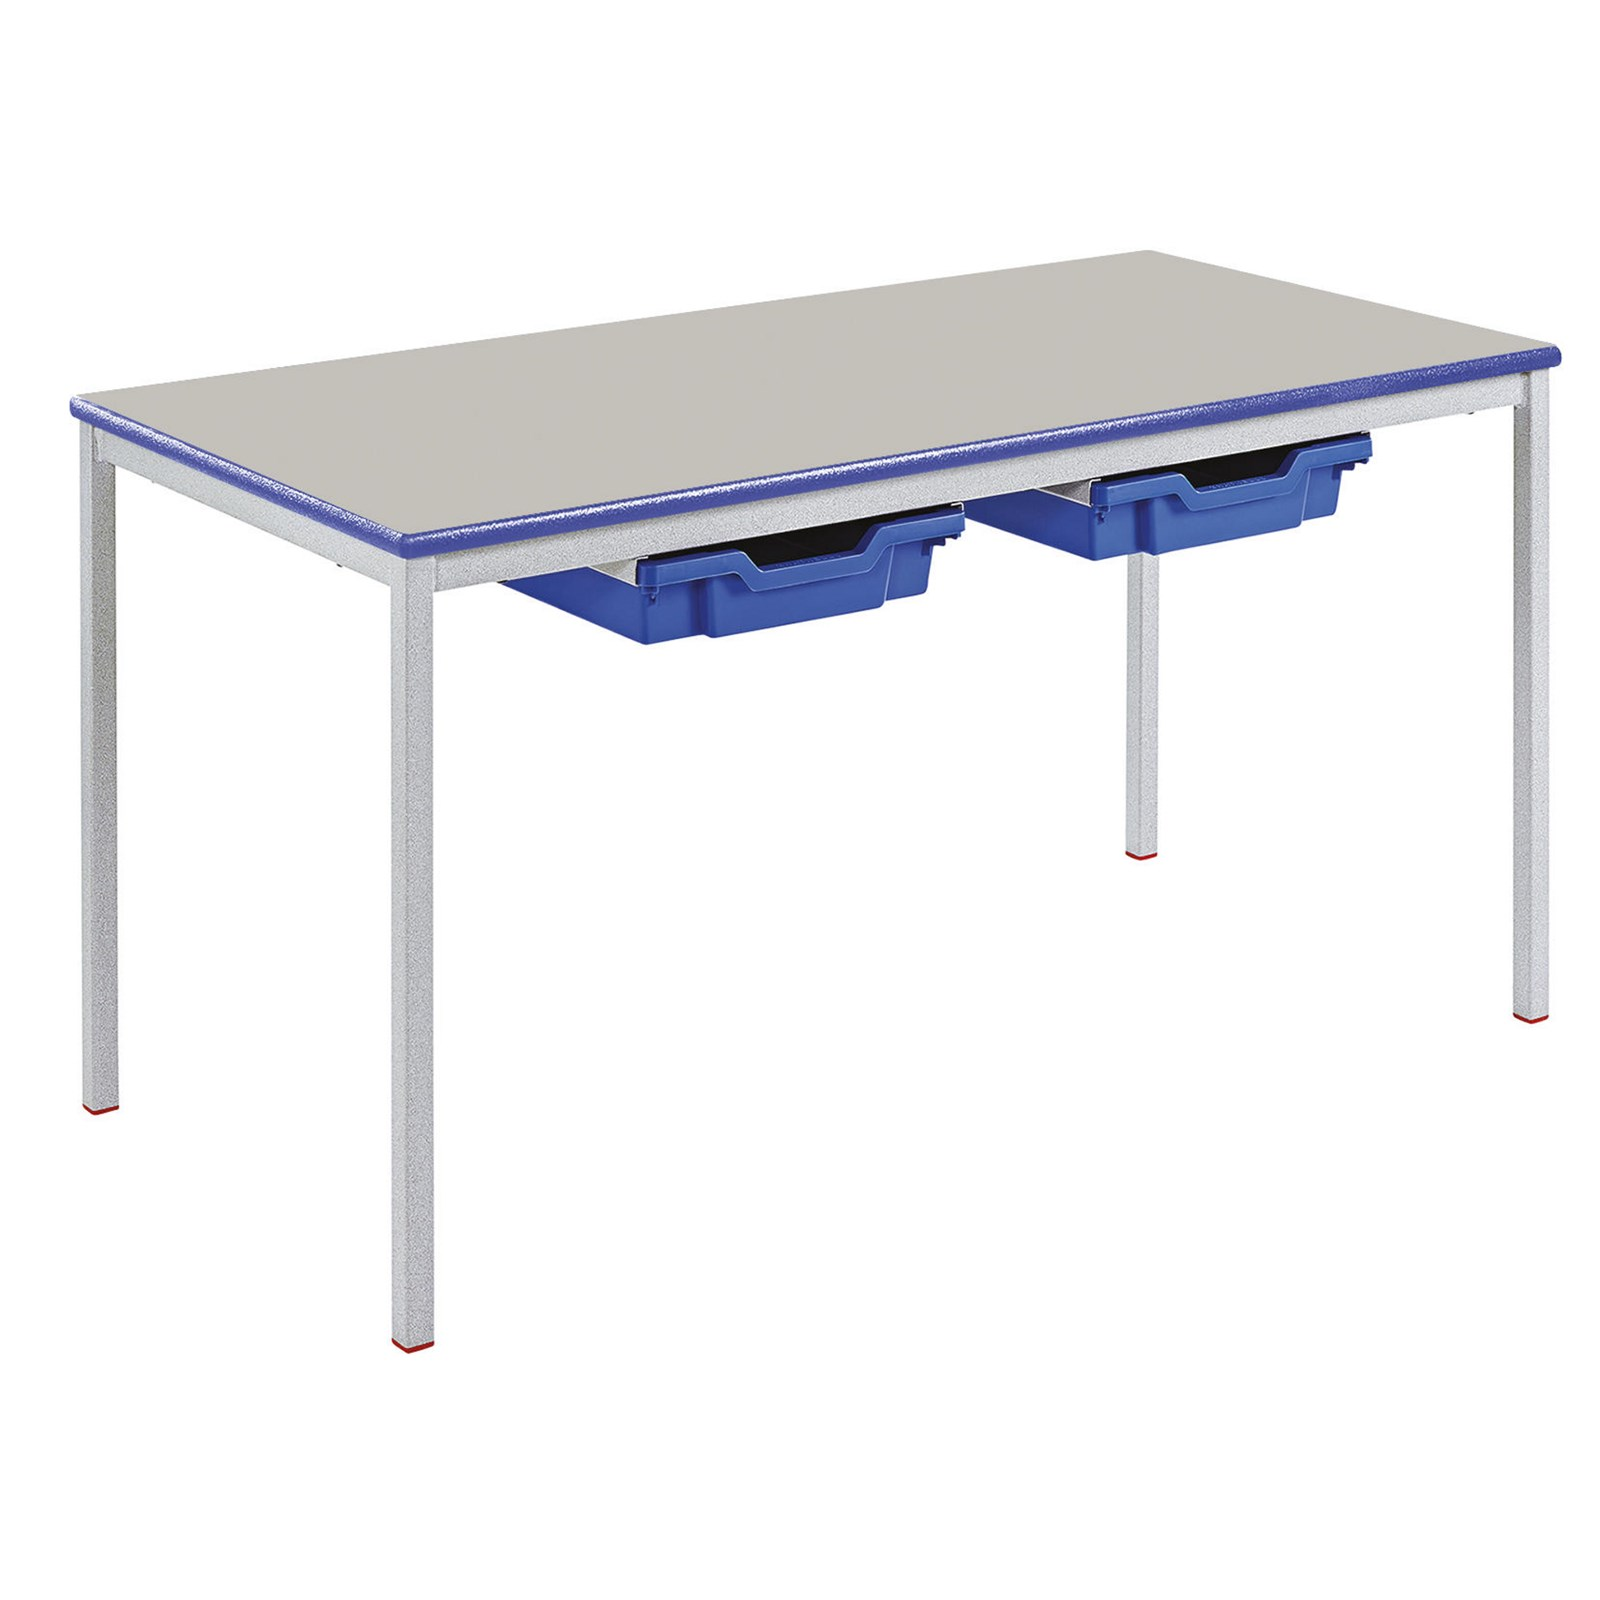 Tray Runner For 600 X 600 Table